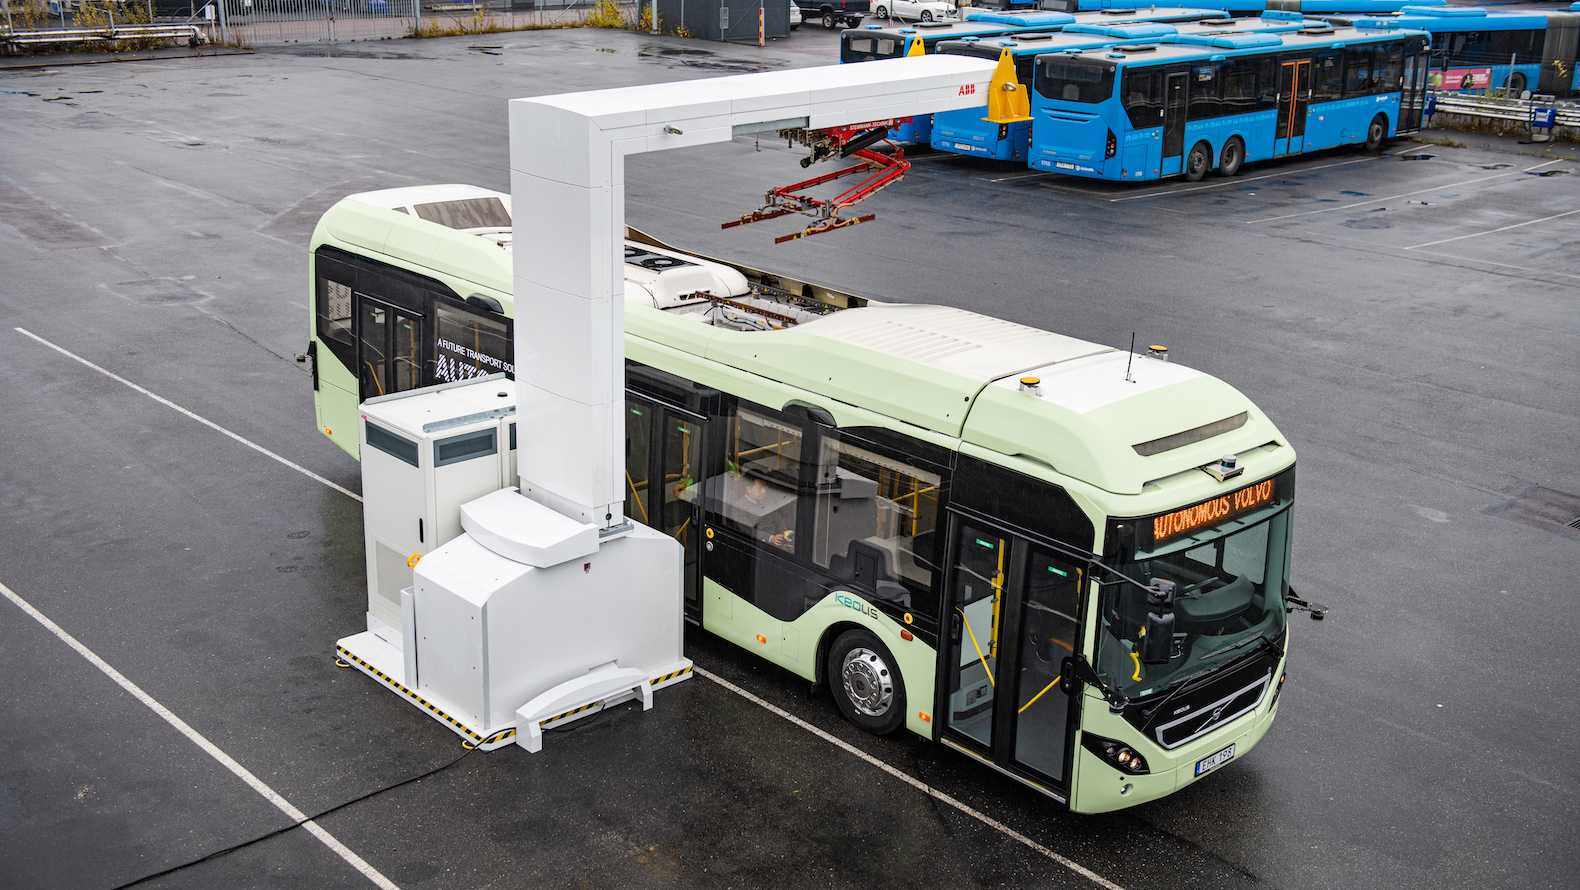 The autonomous Volvo bus at the loading station at the depot.